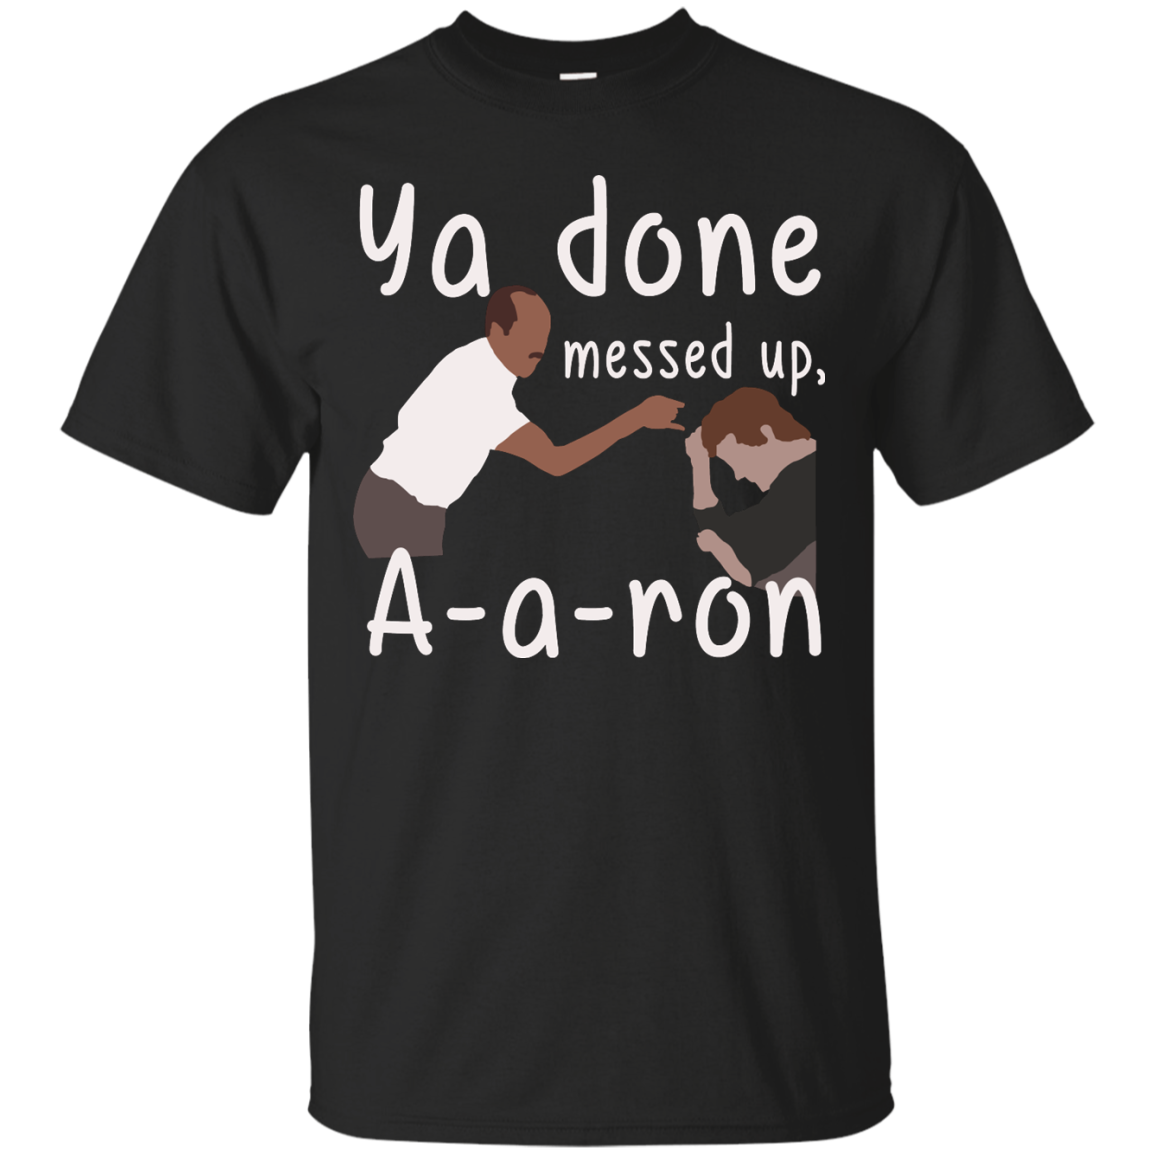 Ya Done Messed Up A a ron, aaron t shirt, hoodies, tank top